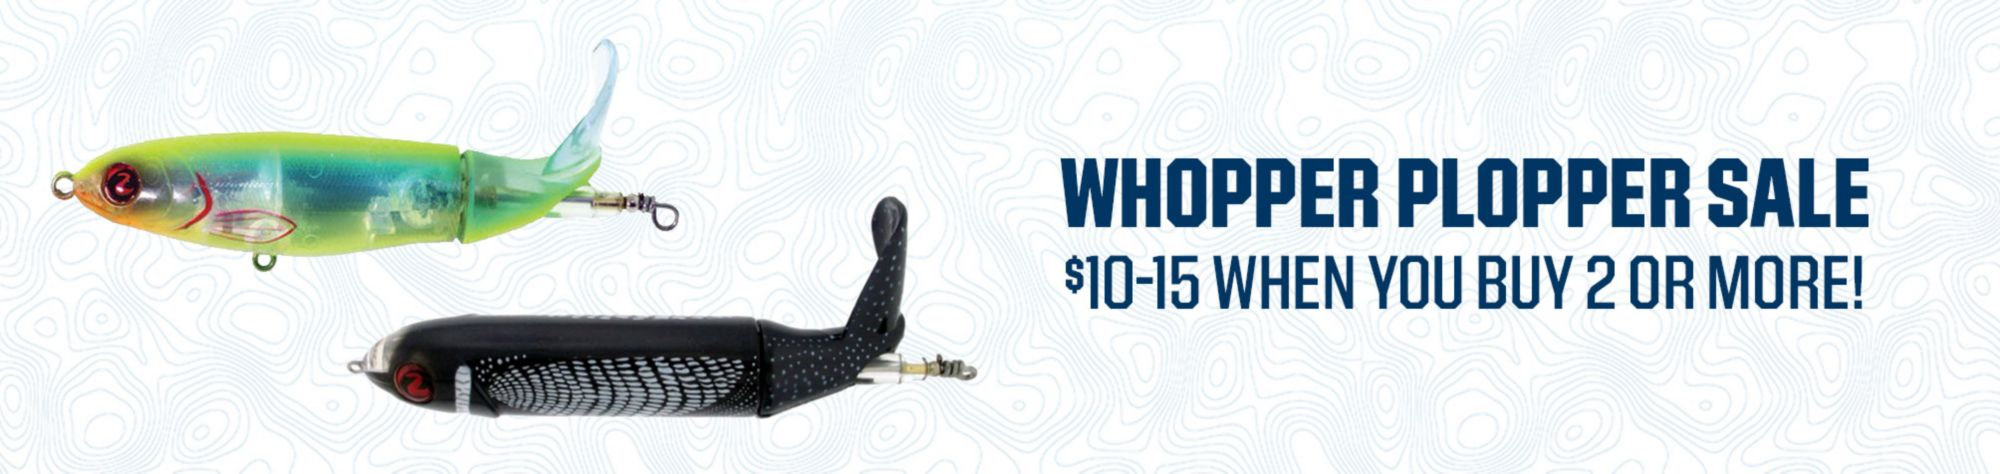 WHOPPER PLOPPER  SALE  $10-15 WHEN YOU BUY 2 OR MORE